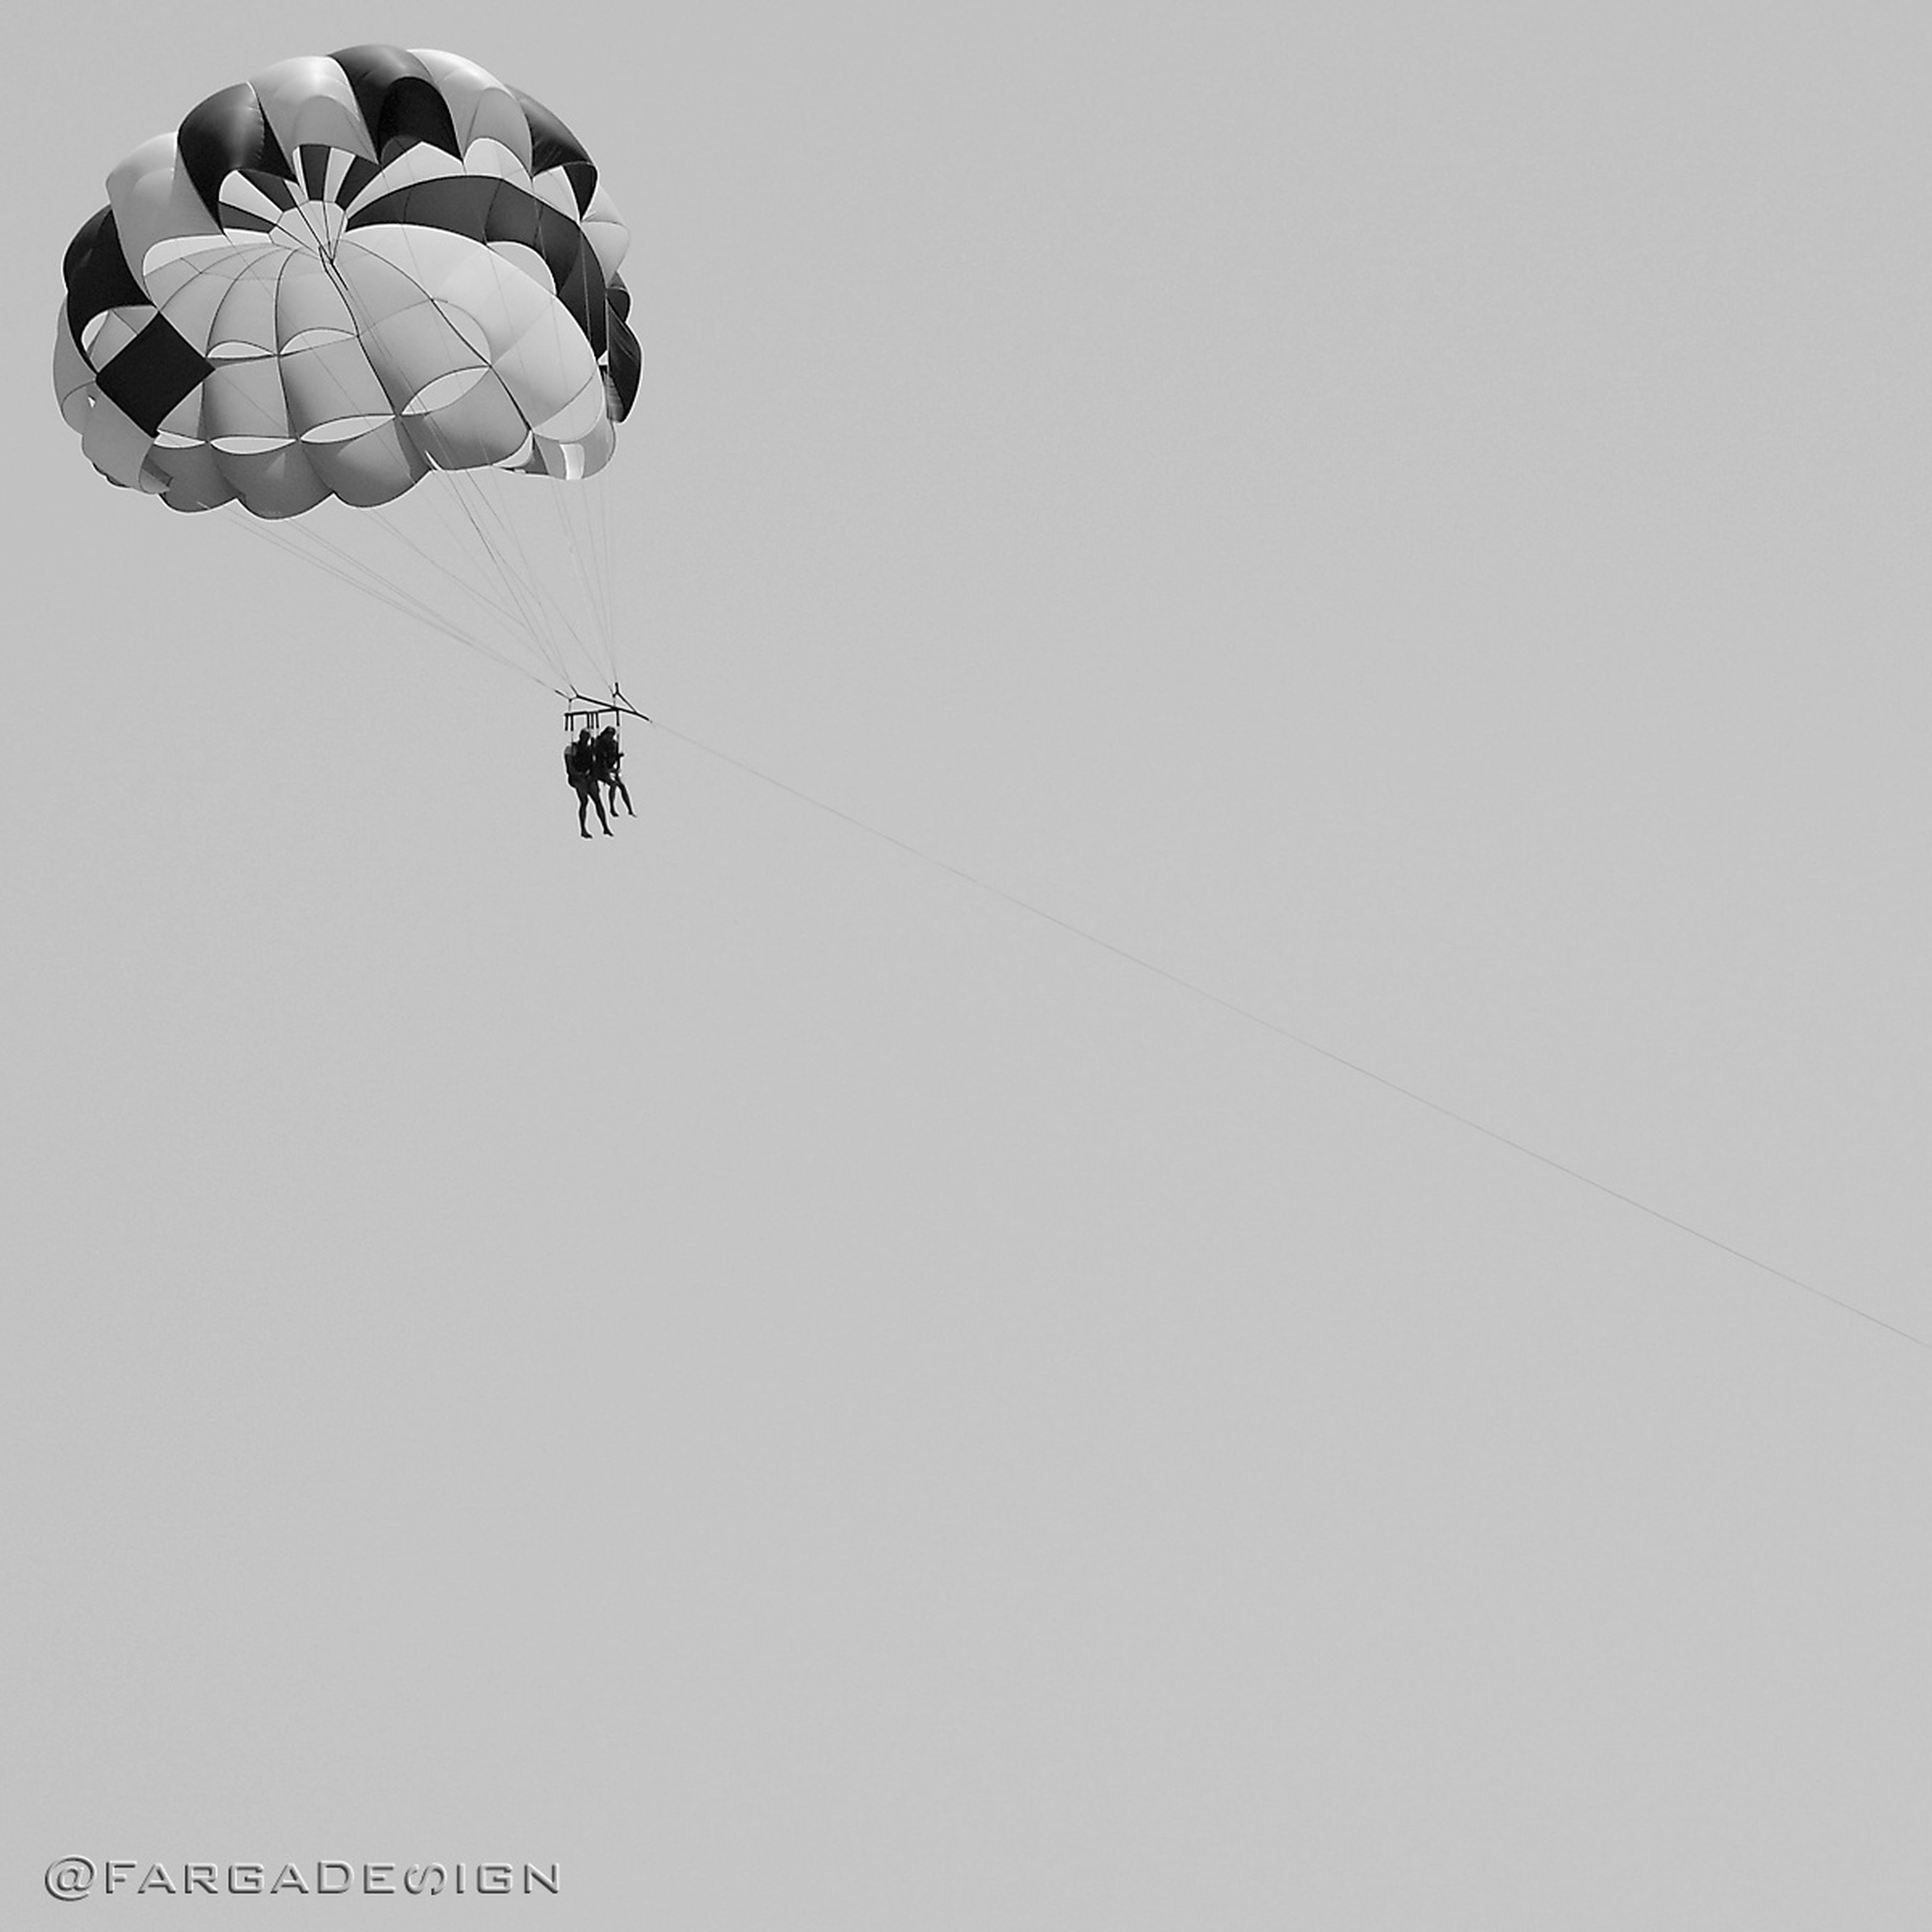 transportation, mid-air, flying, extreme sports, mode of transport, adventure, low angle view, air vehicle, leisure activity, parachute, lifestyles, clear sky, airplane, on the move, copy space, travel, unrecognizable person, men